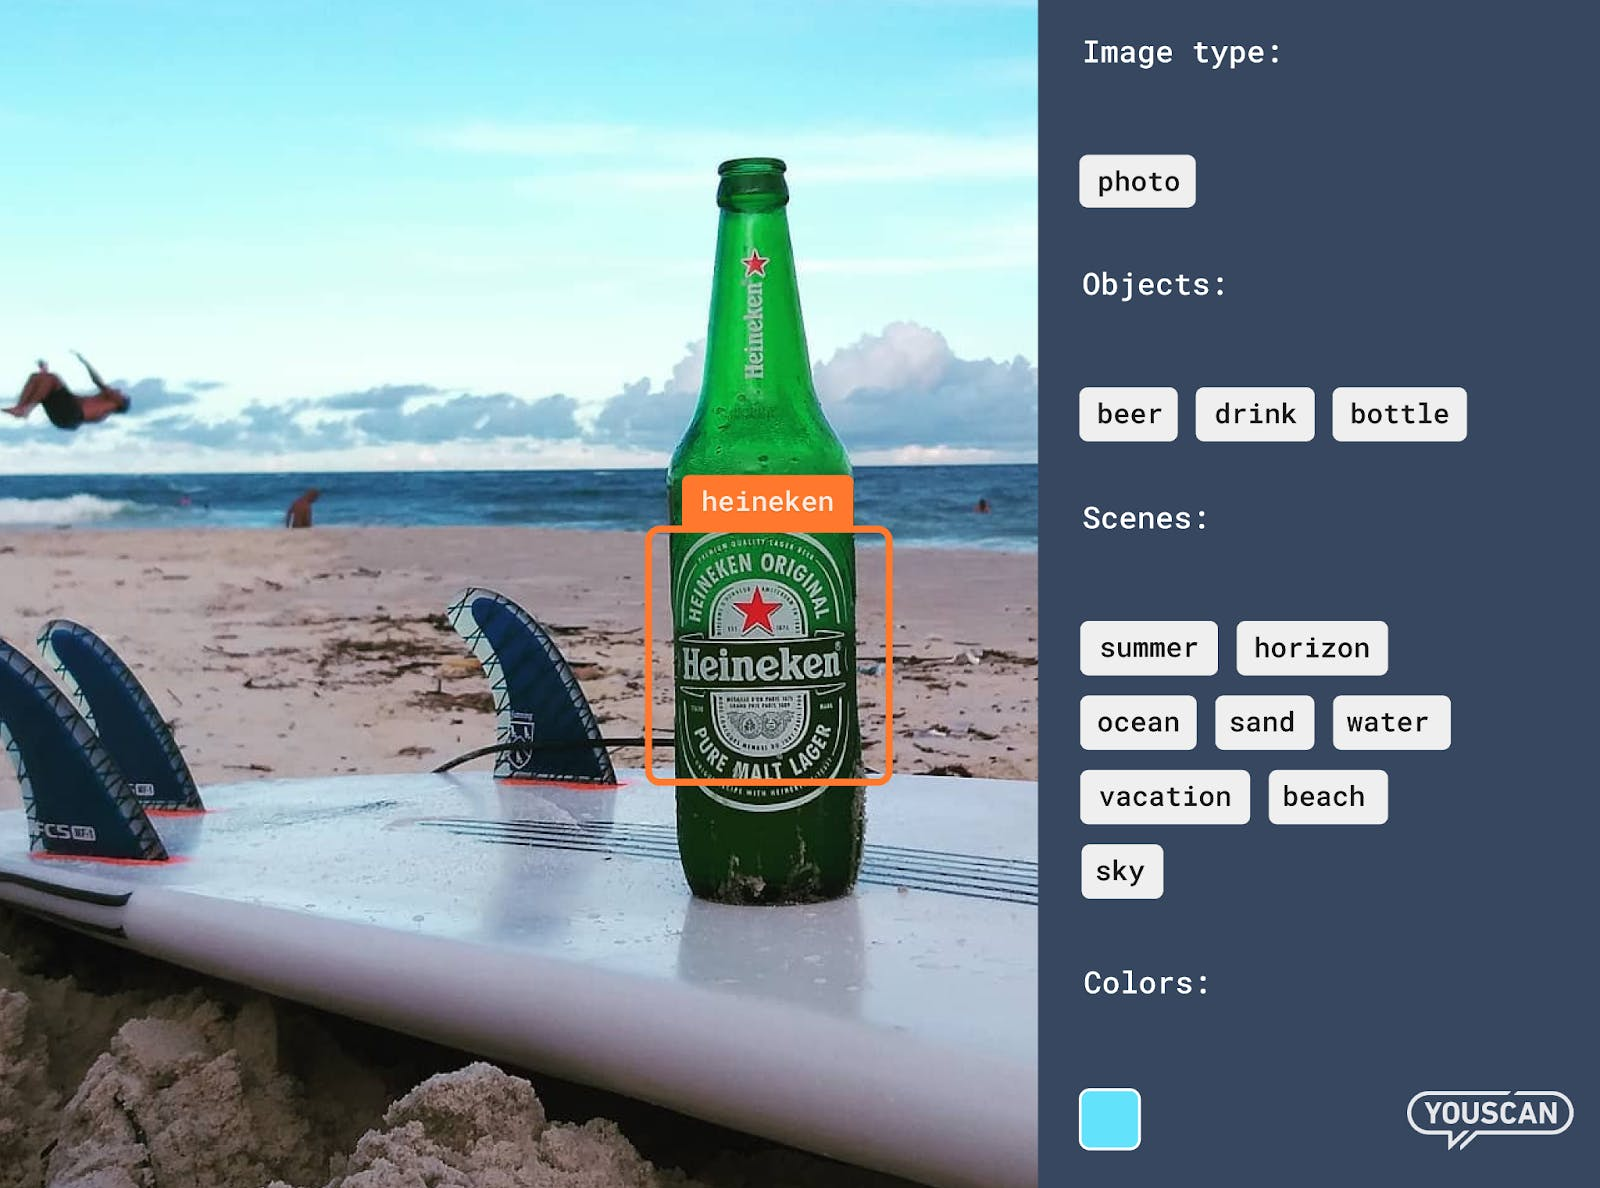 youscan image analysis with green heineken bottle on a surfboard at the beach